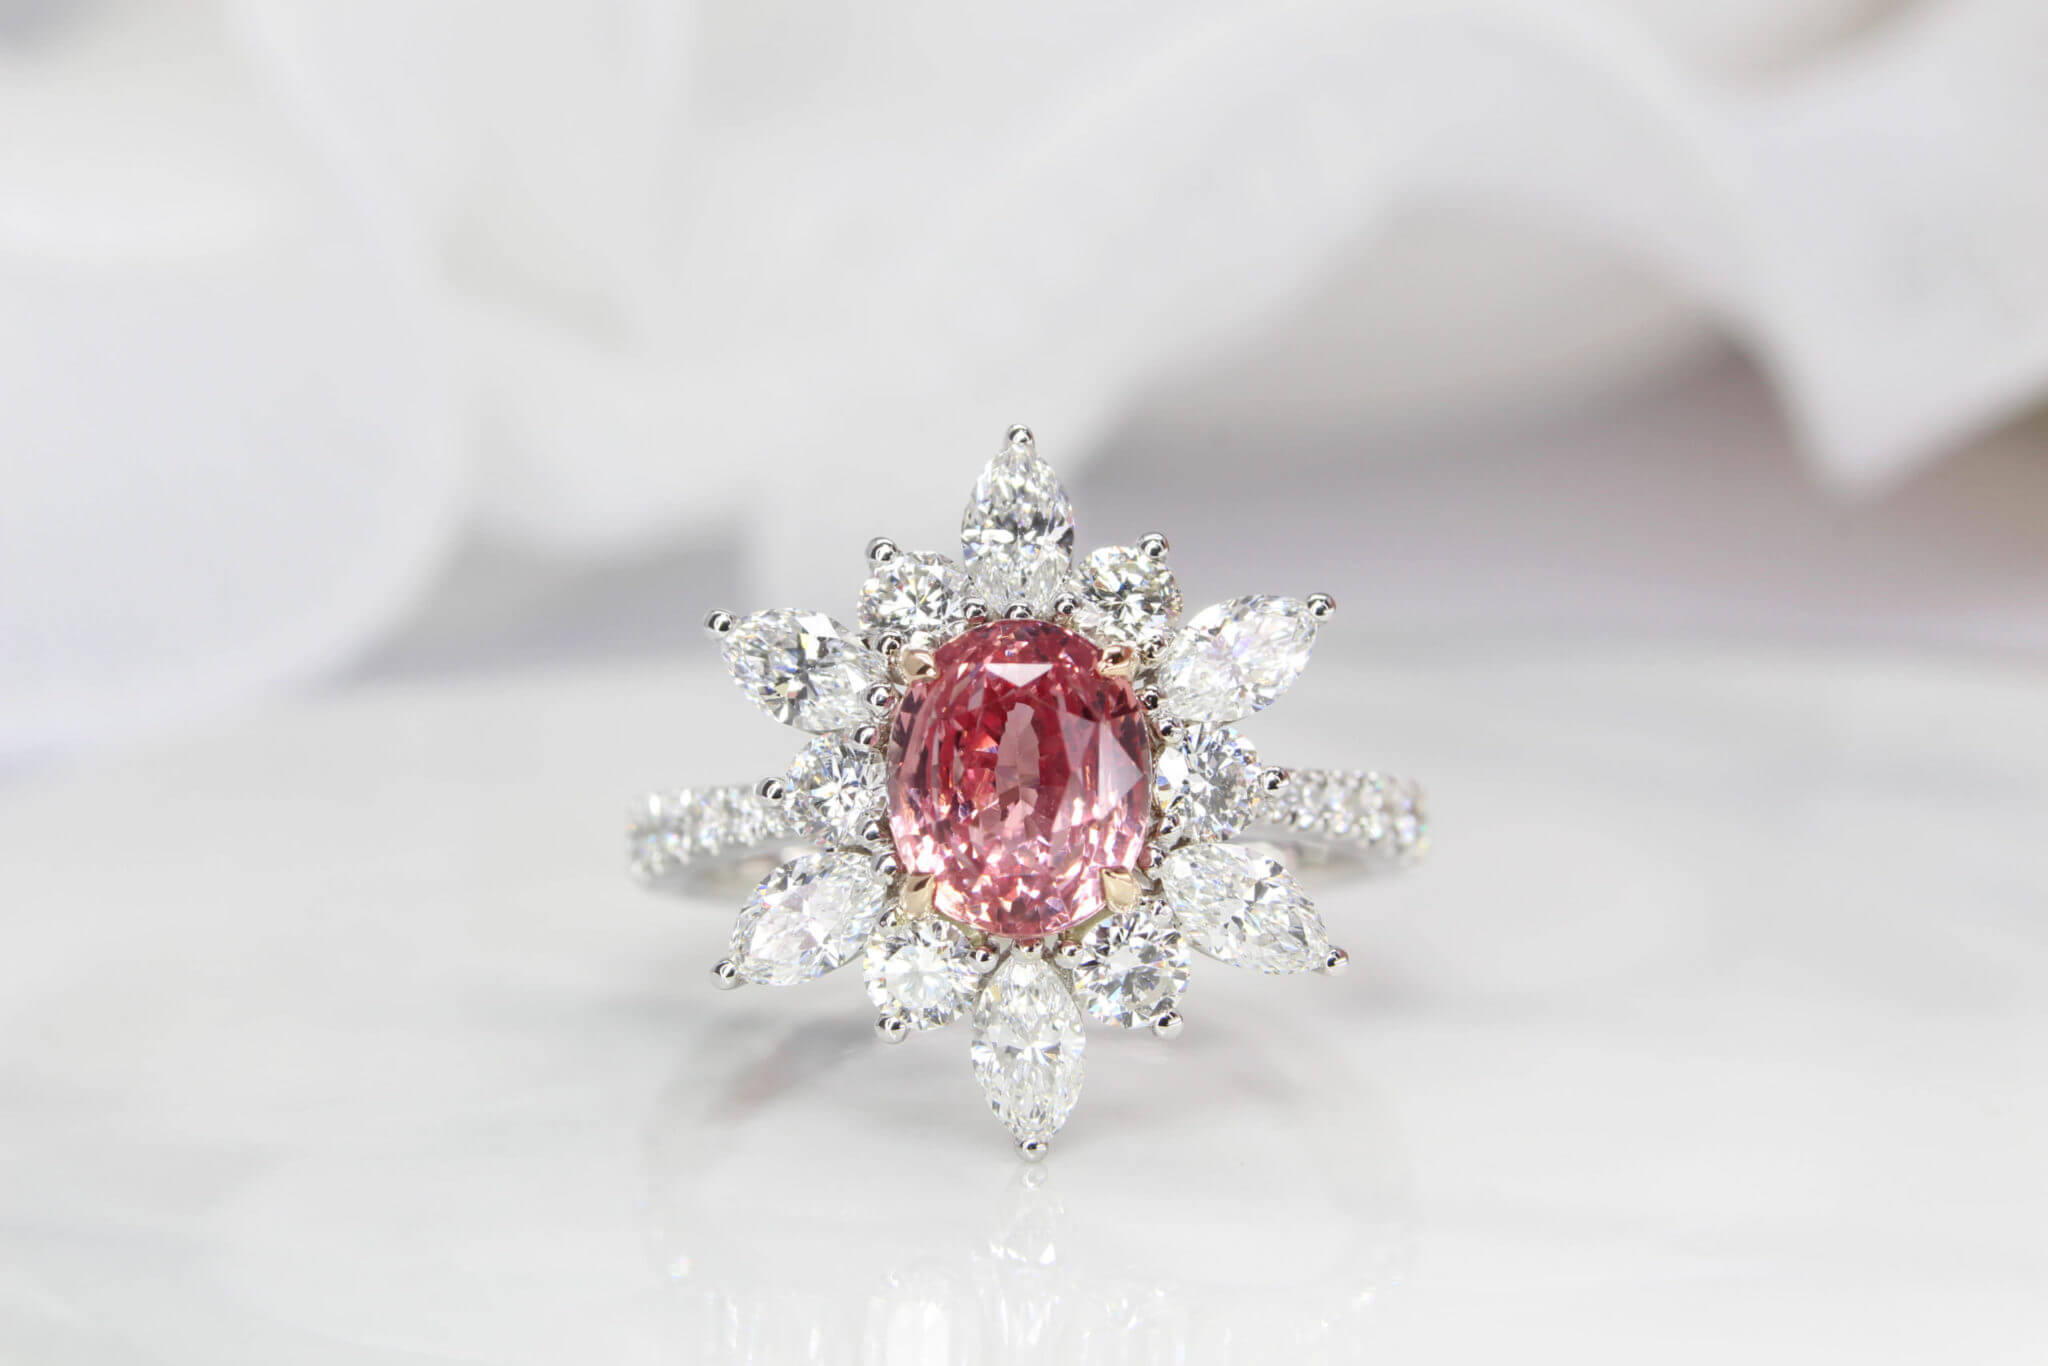 Sapphire Padparadscha Customised Ring with halo starburst diamond ring setting from round to pear diamond - Natural padparadscha sapphire unheated without treatment. Padparadscha sapphire is truly exceptional and it exhibits brilliance and beauty in every sense. Customised Sapphire Padparadscha Jewellery